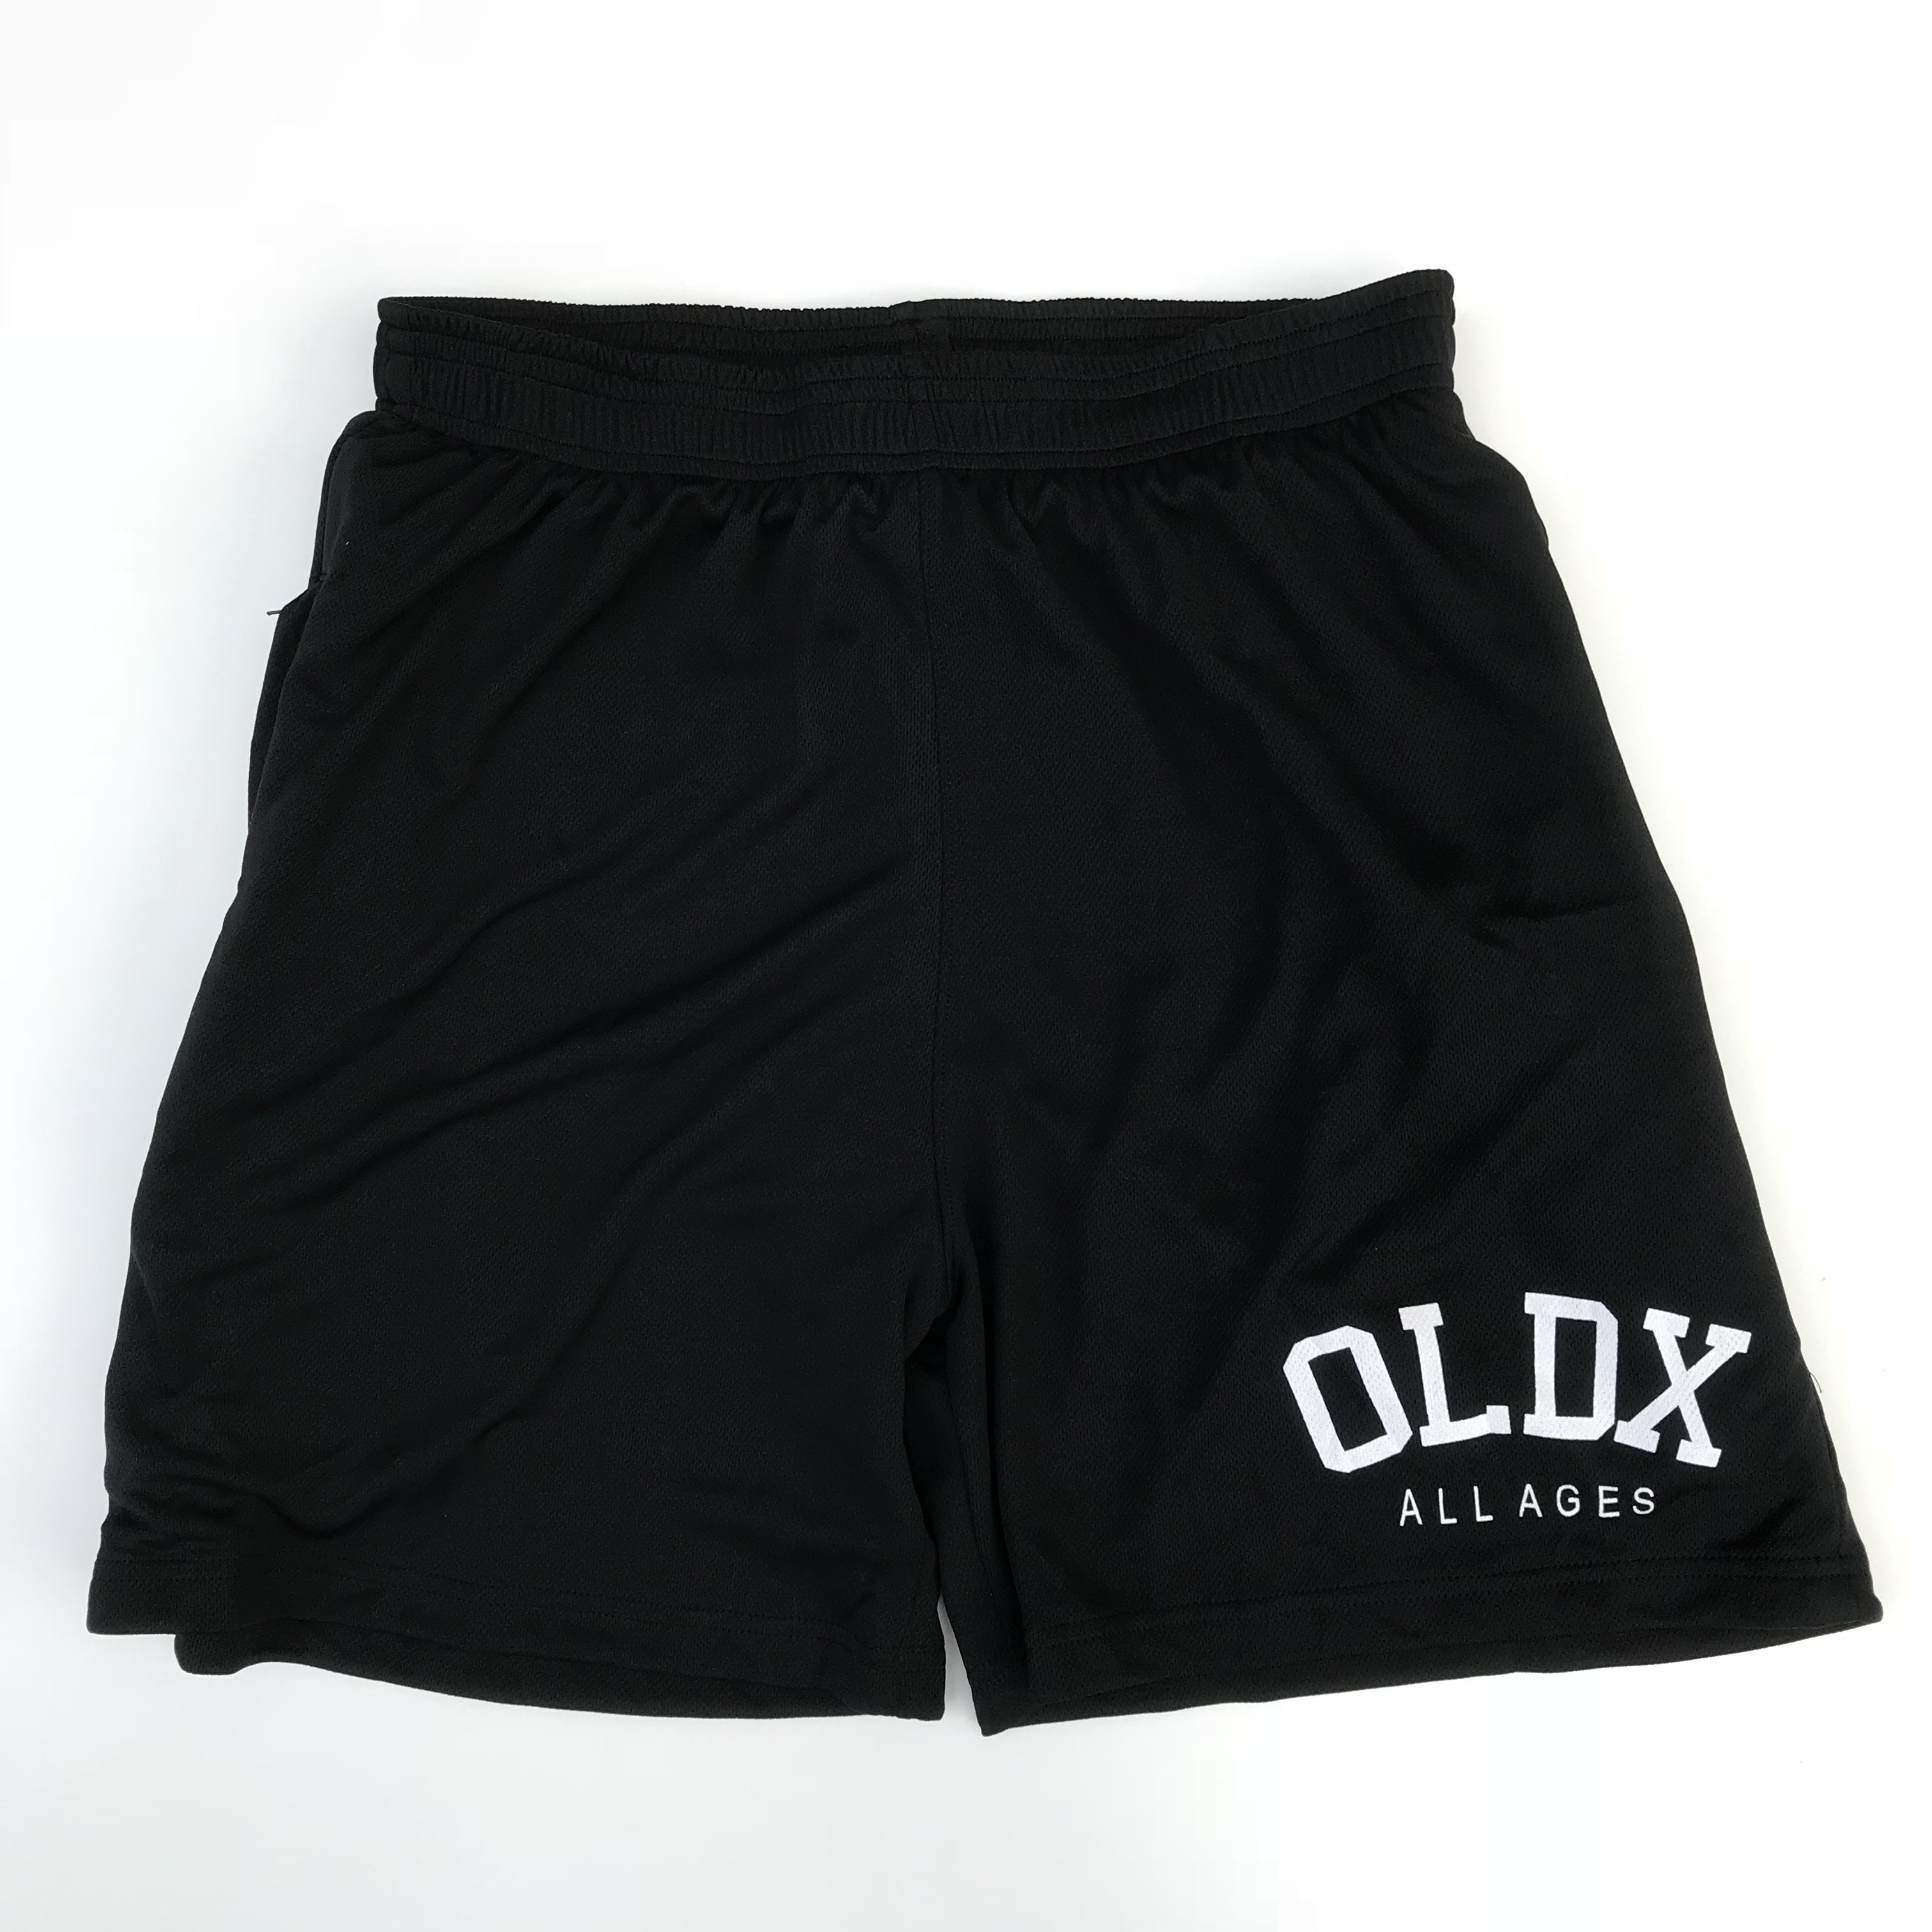 All ages mesh shorts